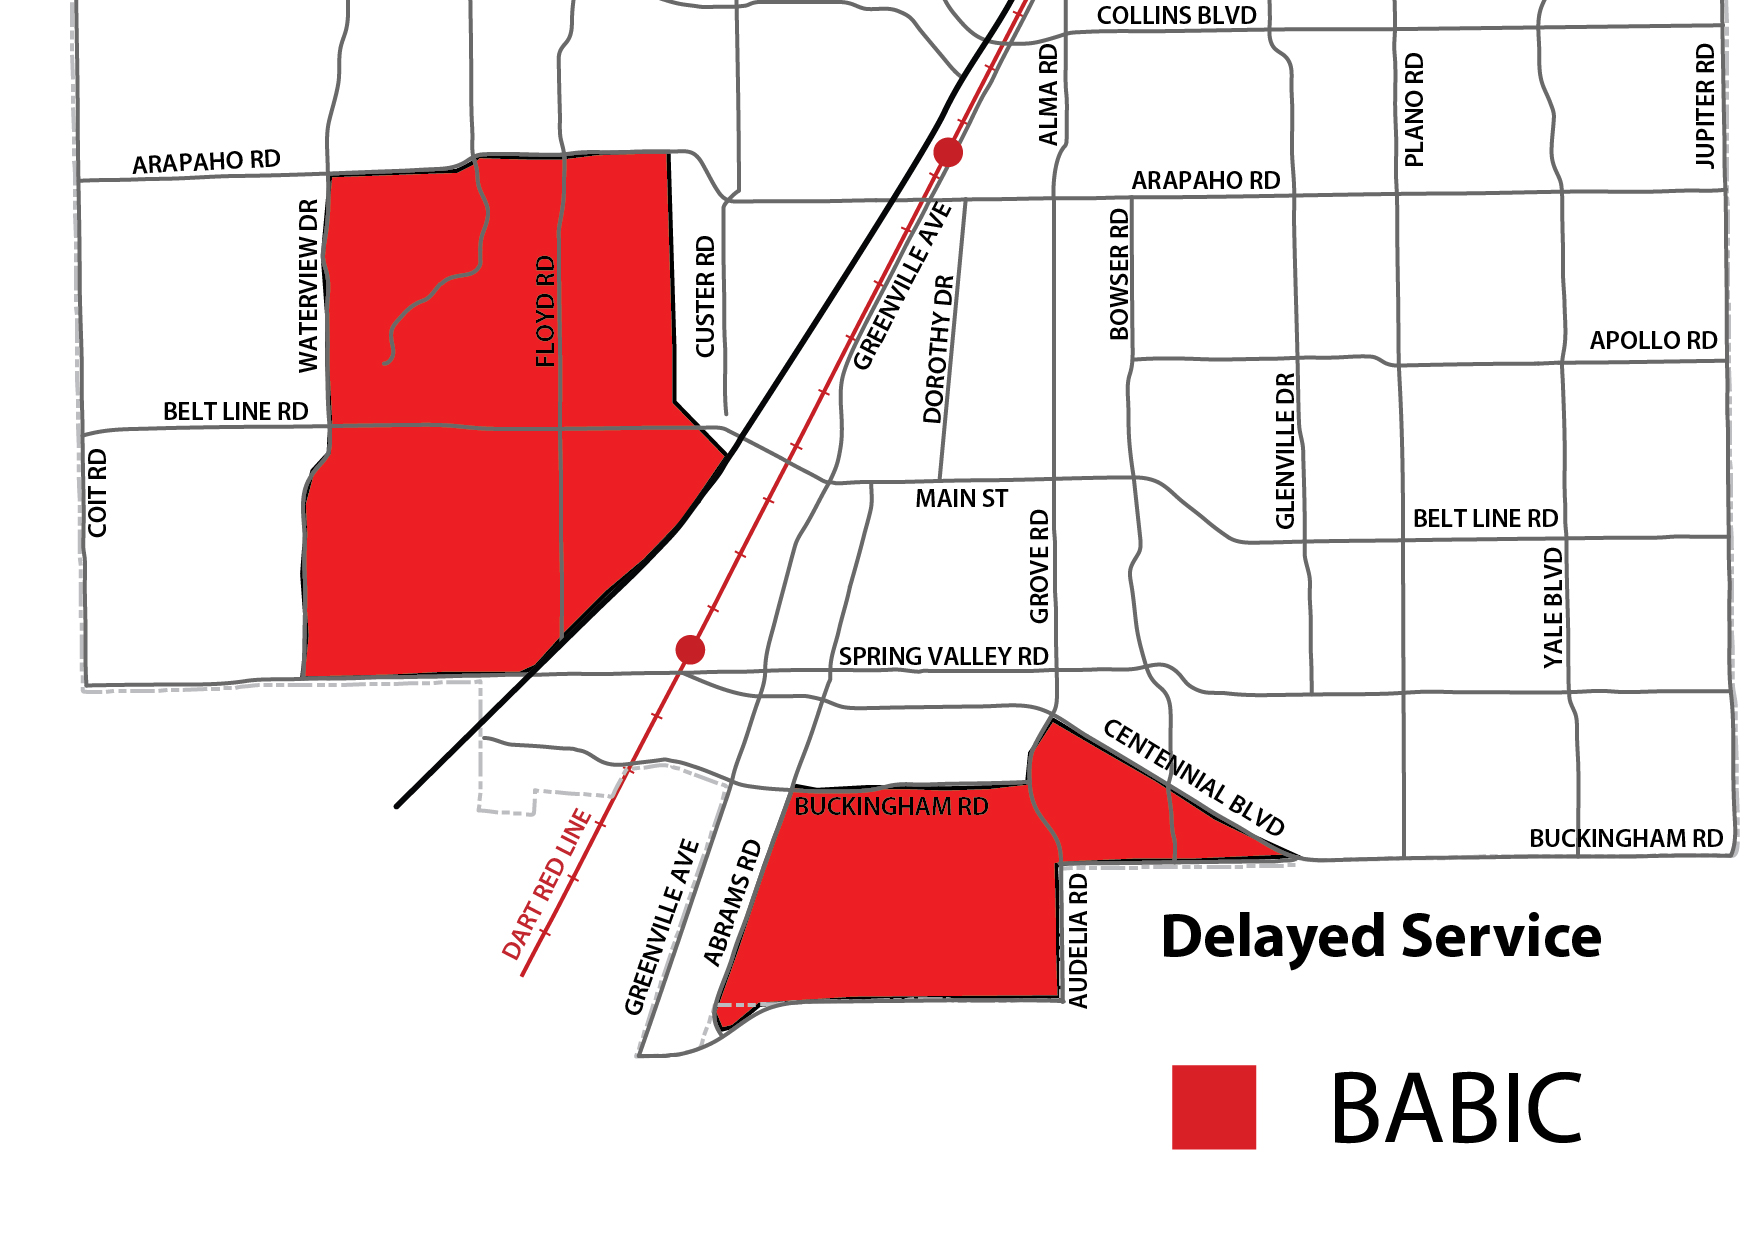 BABIC Recycling Delayed - July 1, 2019_cropped-01